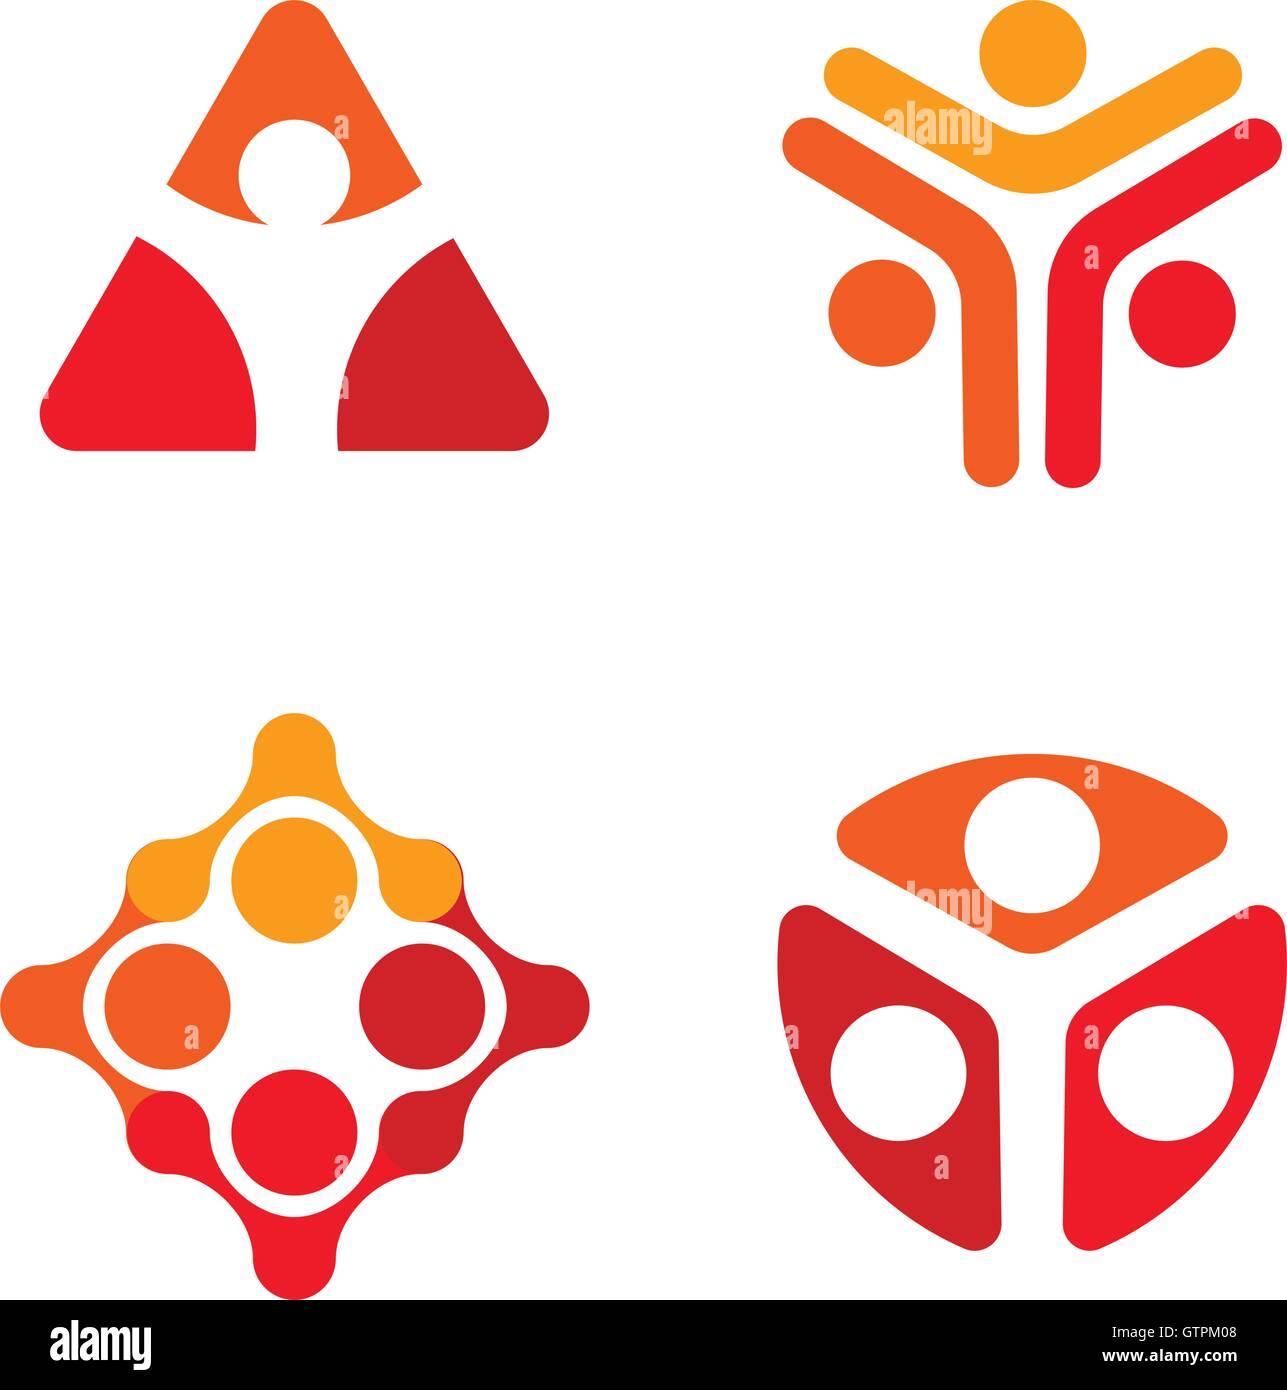 Isolated red and white color decorative vector logo set. Unusual human silhouette logotypes collection. Geometric - Stock Image